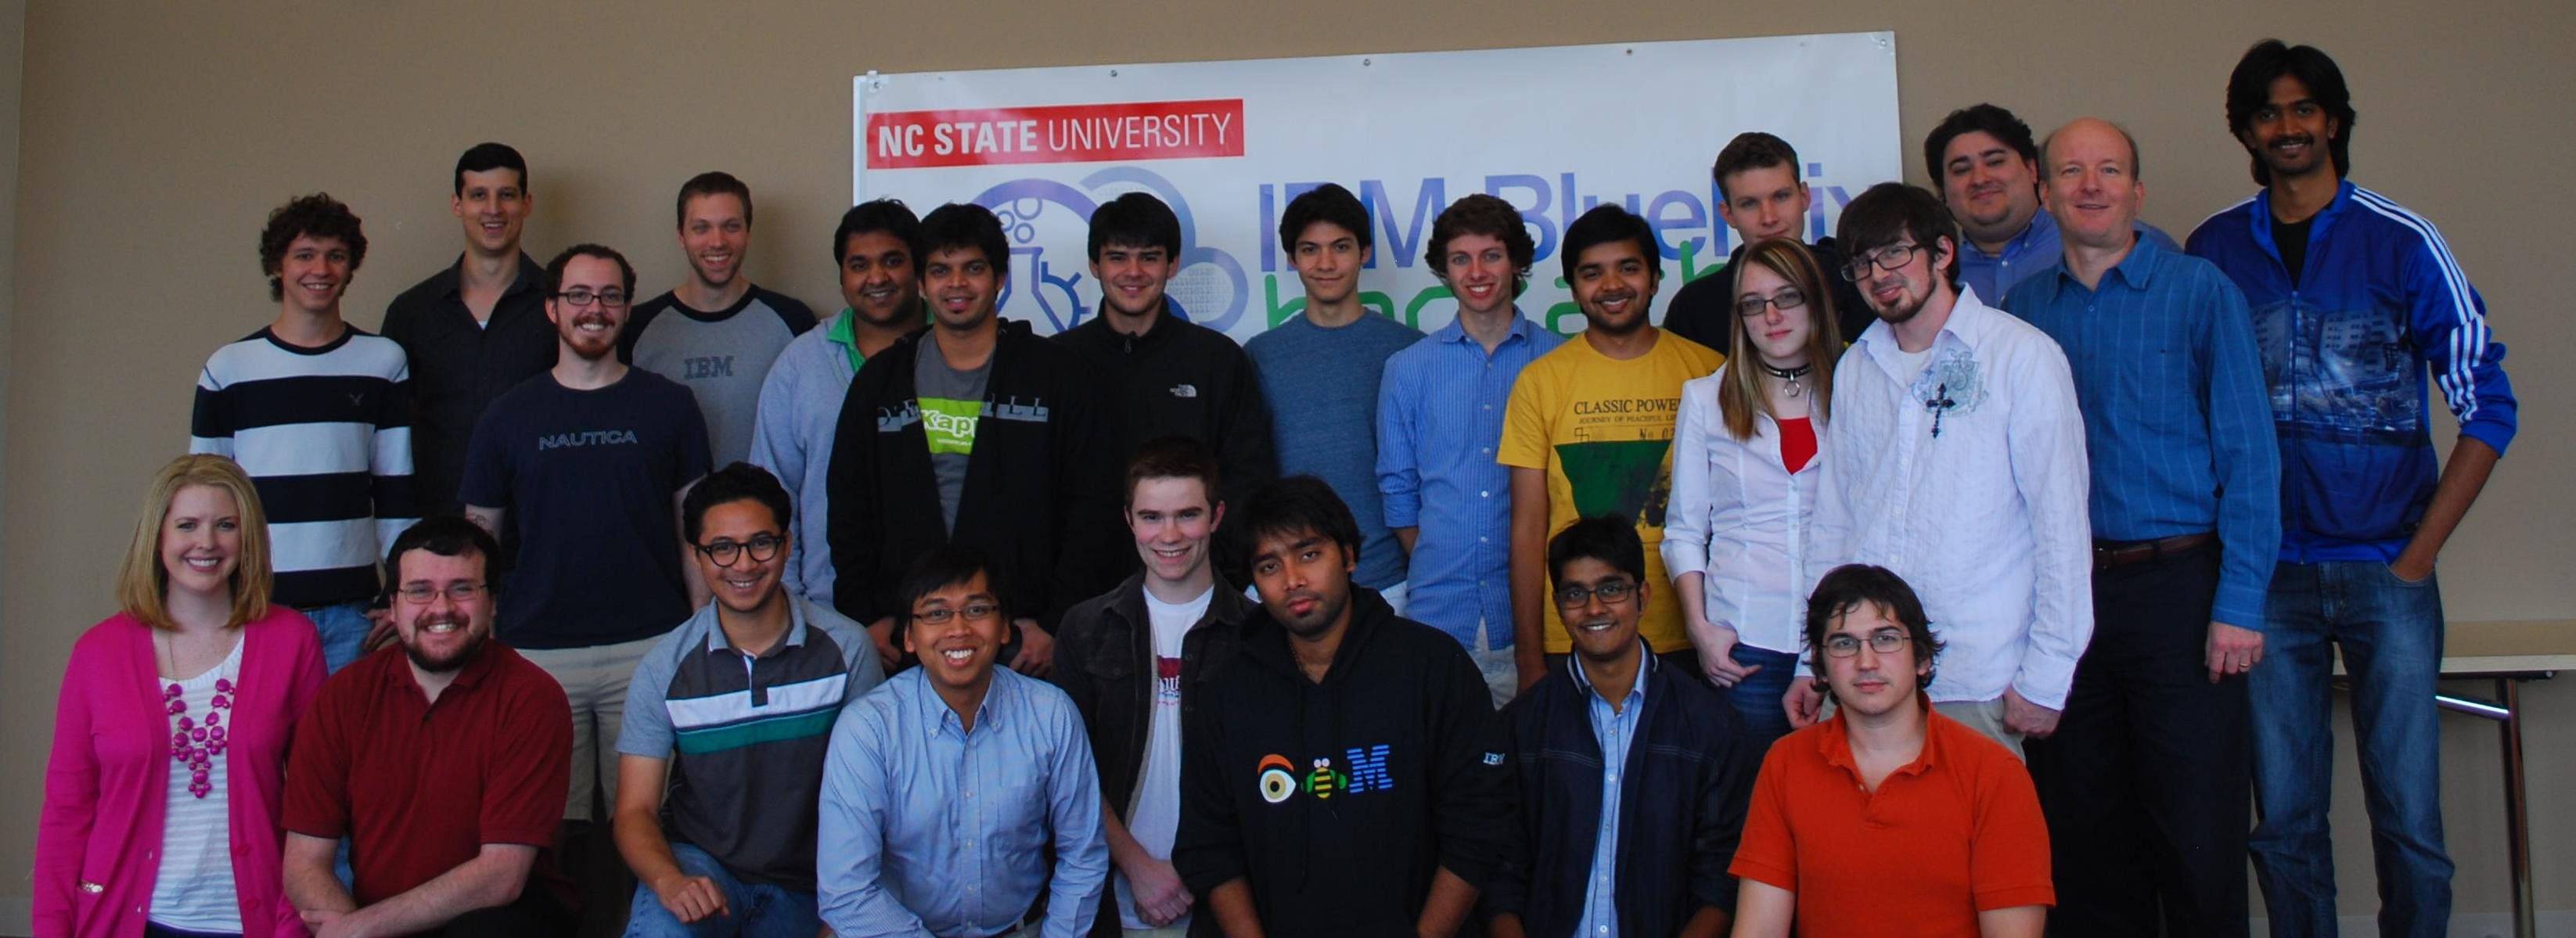 The Hackathon Participants and the IBMers